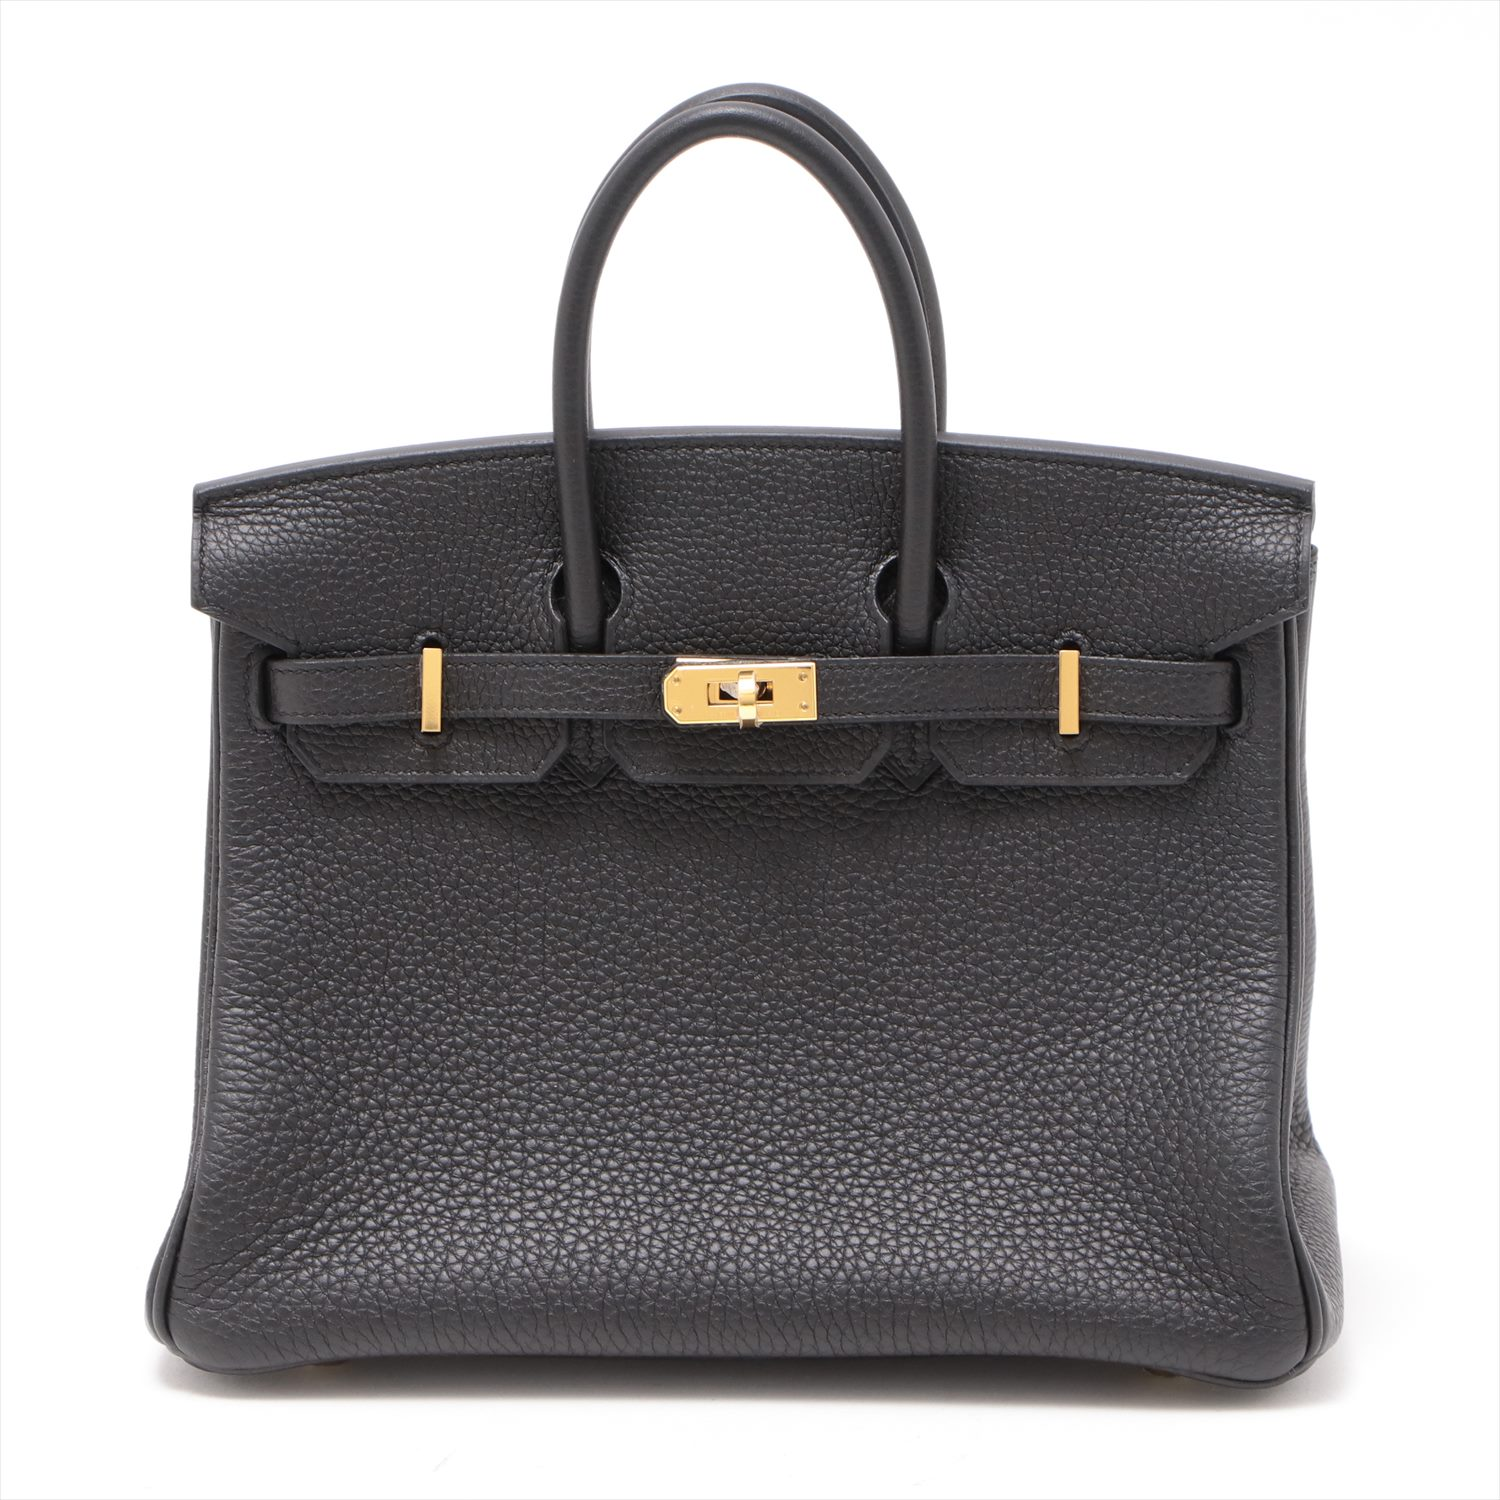 [Used goods] Hermes Birkin 25 Togo Black Gold Hardware C: 2018 years